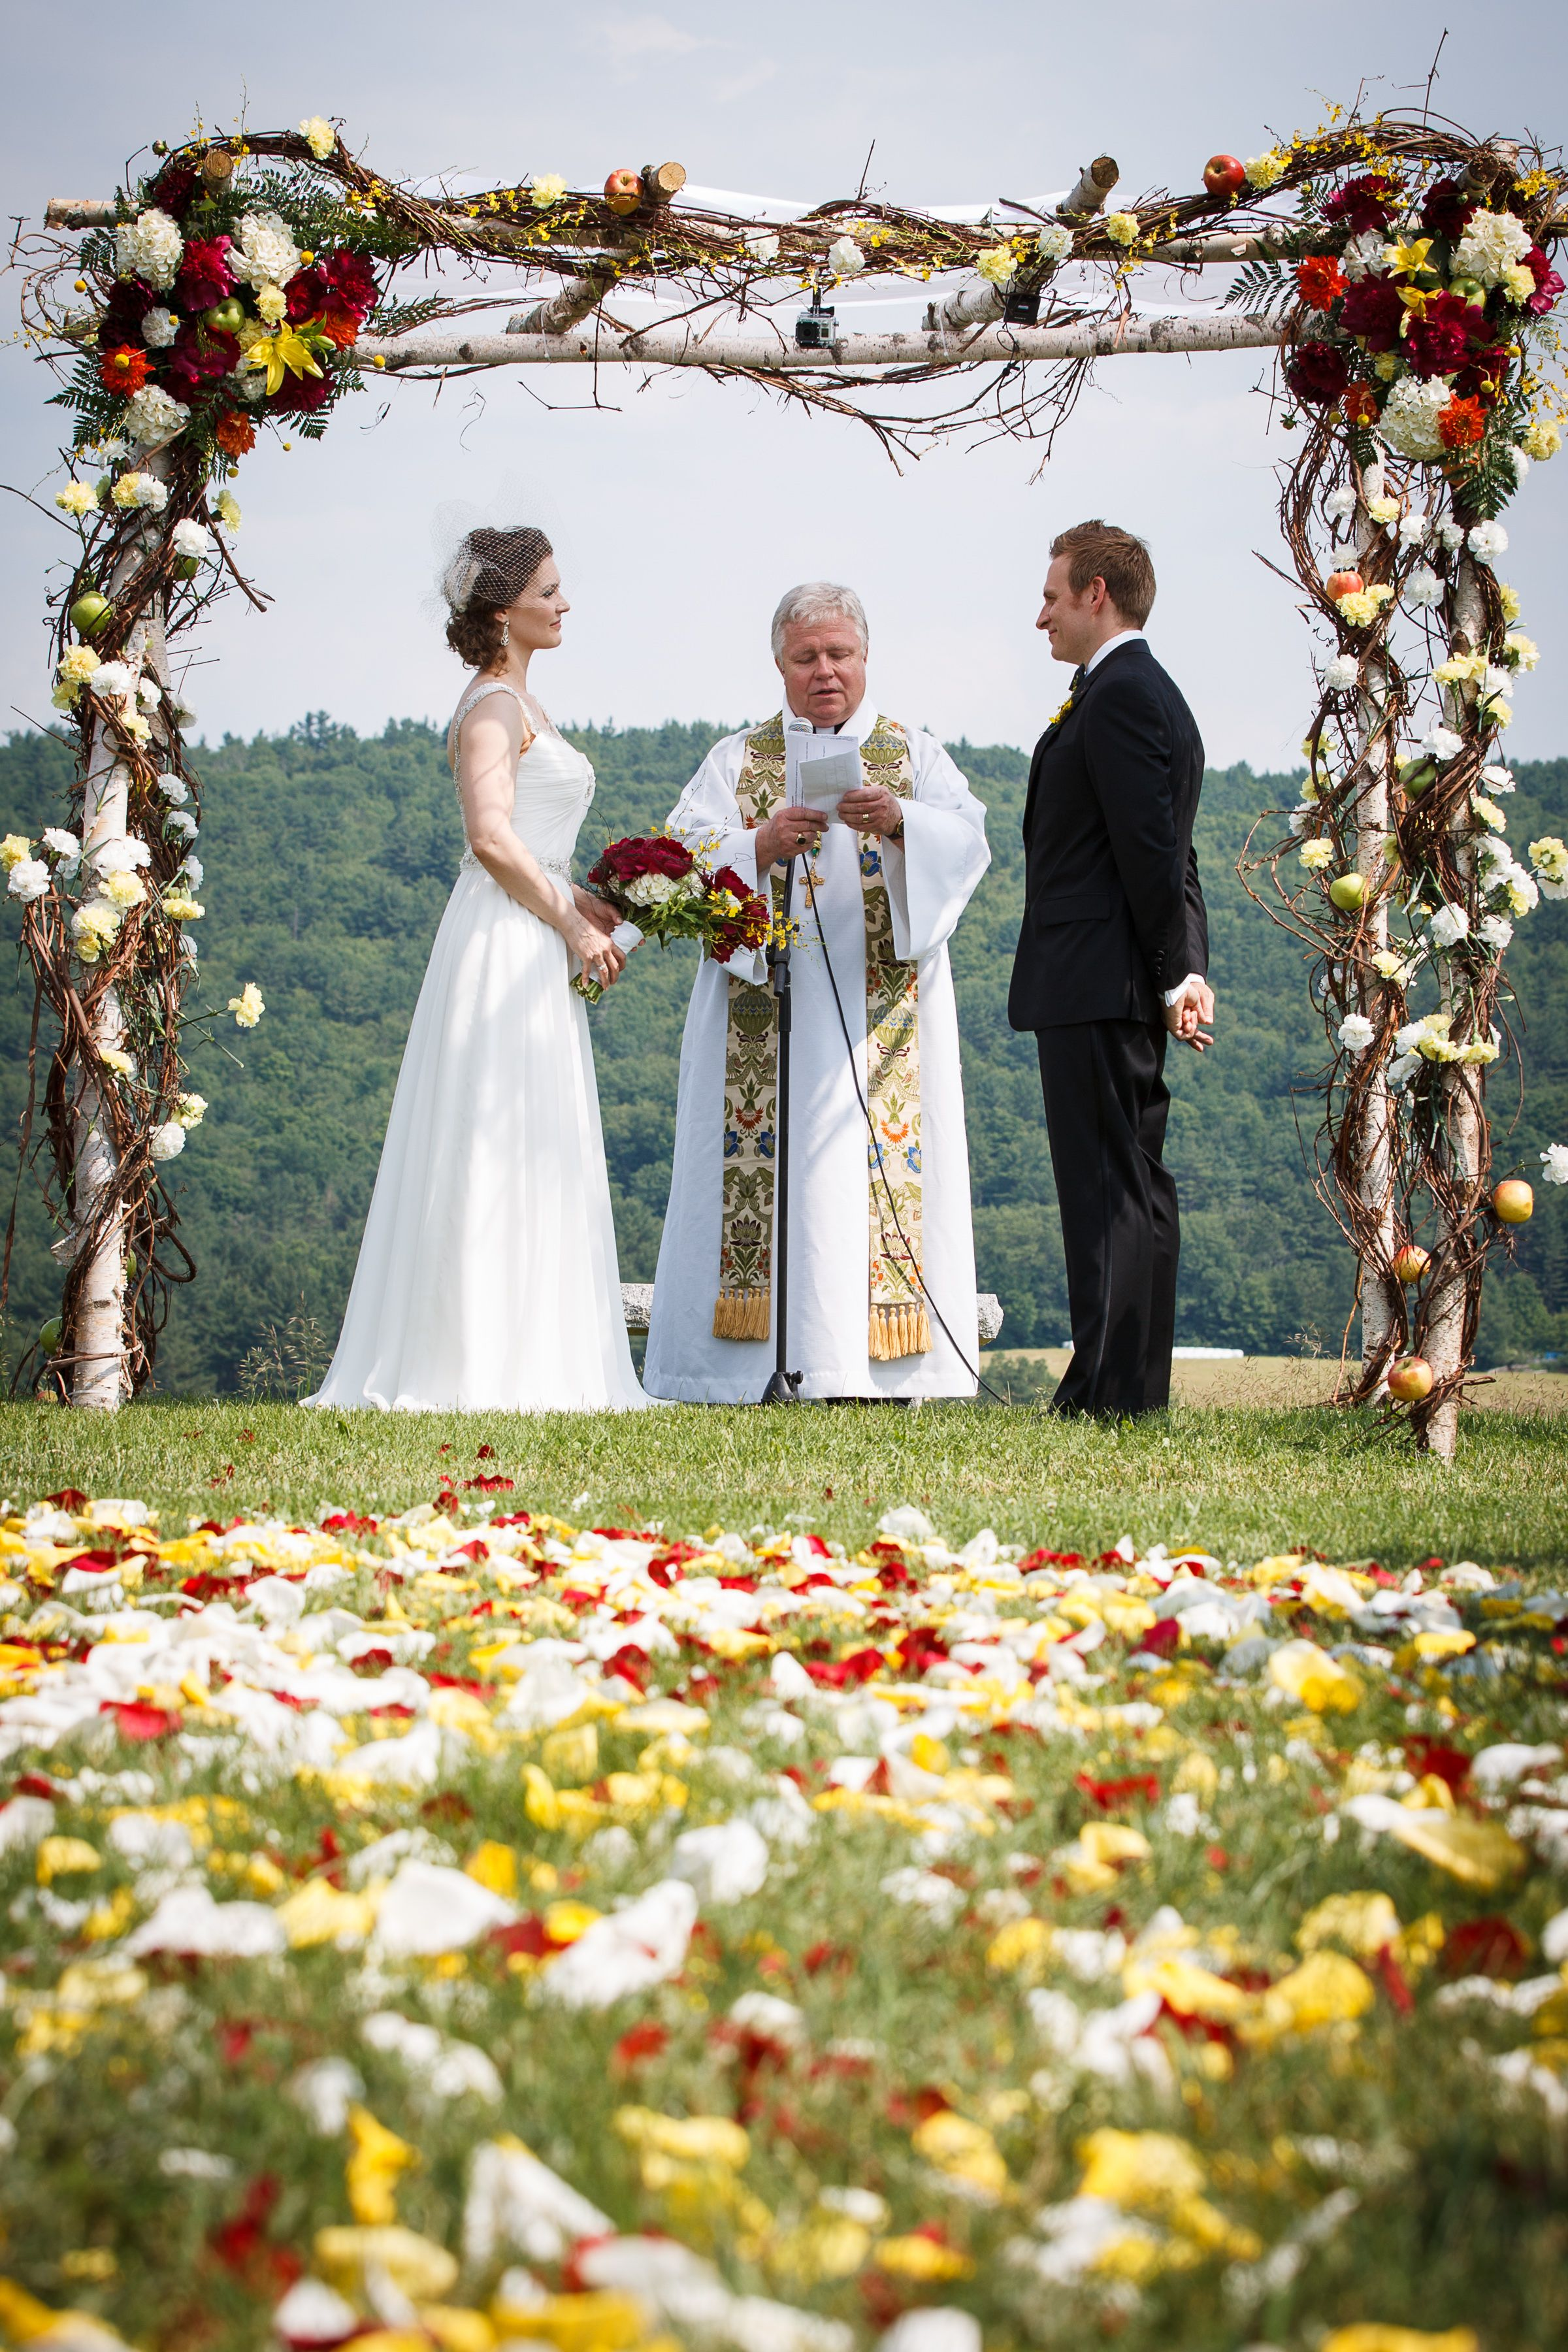 These rose pedals add a certain charm to the wedding. This is also a great way to incorporate your wedding colors into the ceremony! Photo Credit: Kendal J. Bush